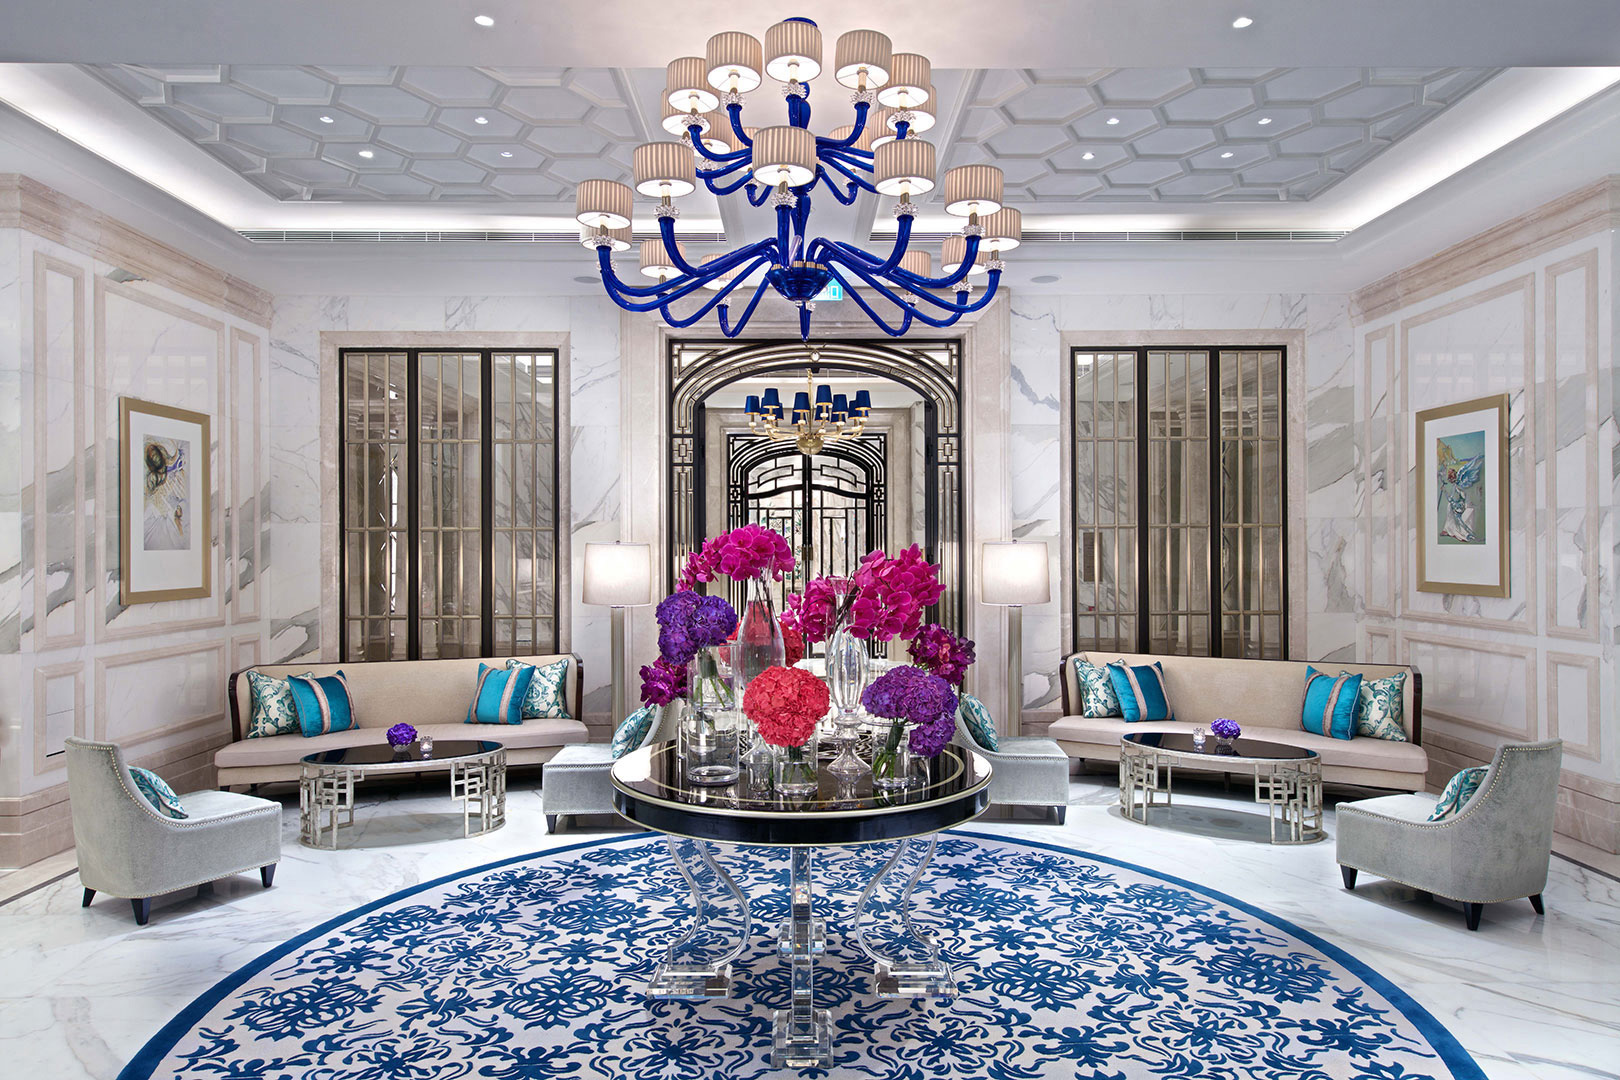 What Is The Best Hotel In Chicago